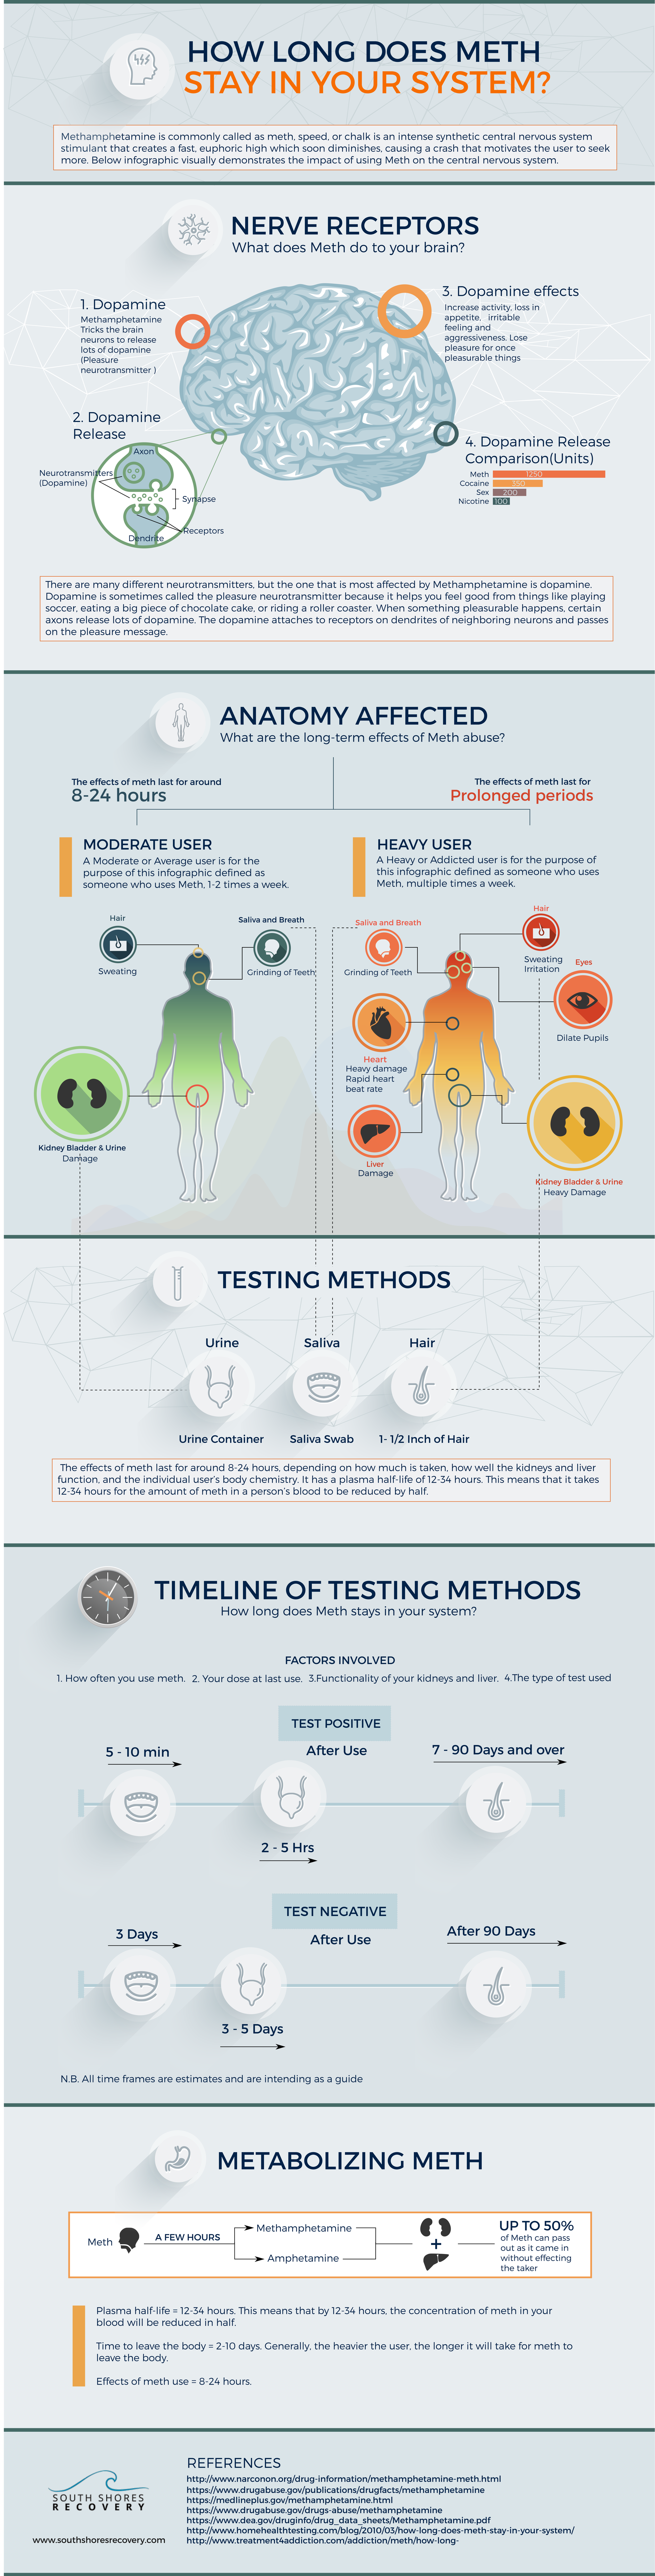 Infographic: How Long Does Meth Stay In Your System?